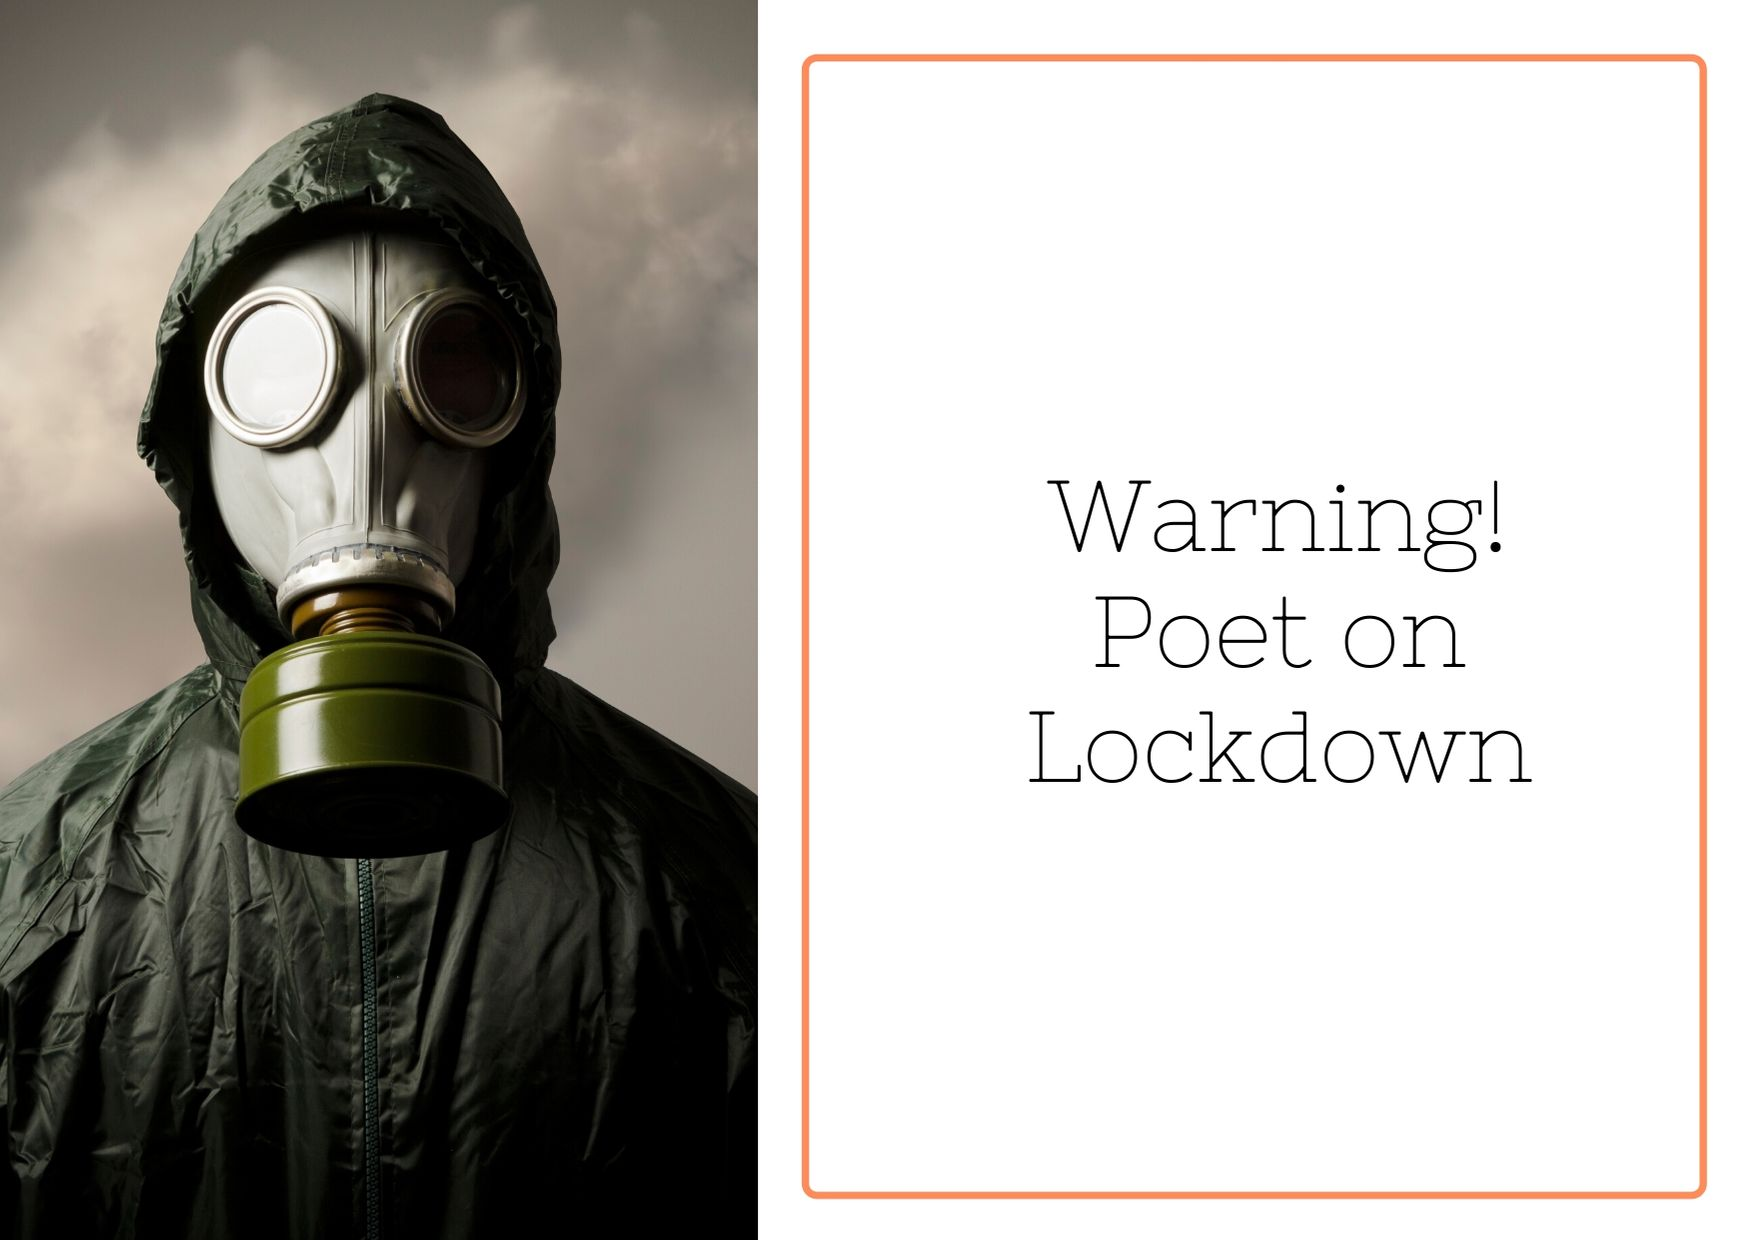 poet_on_lockdown